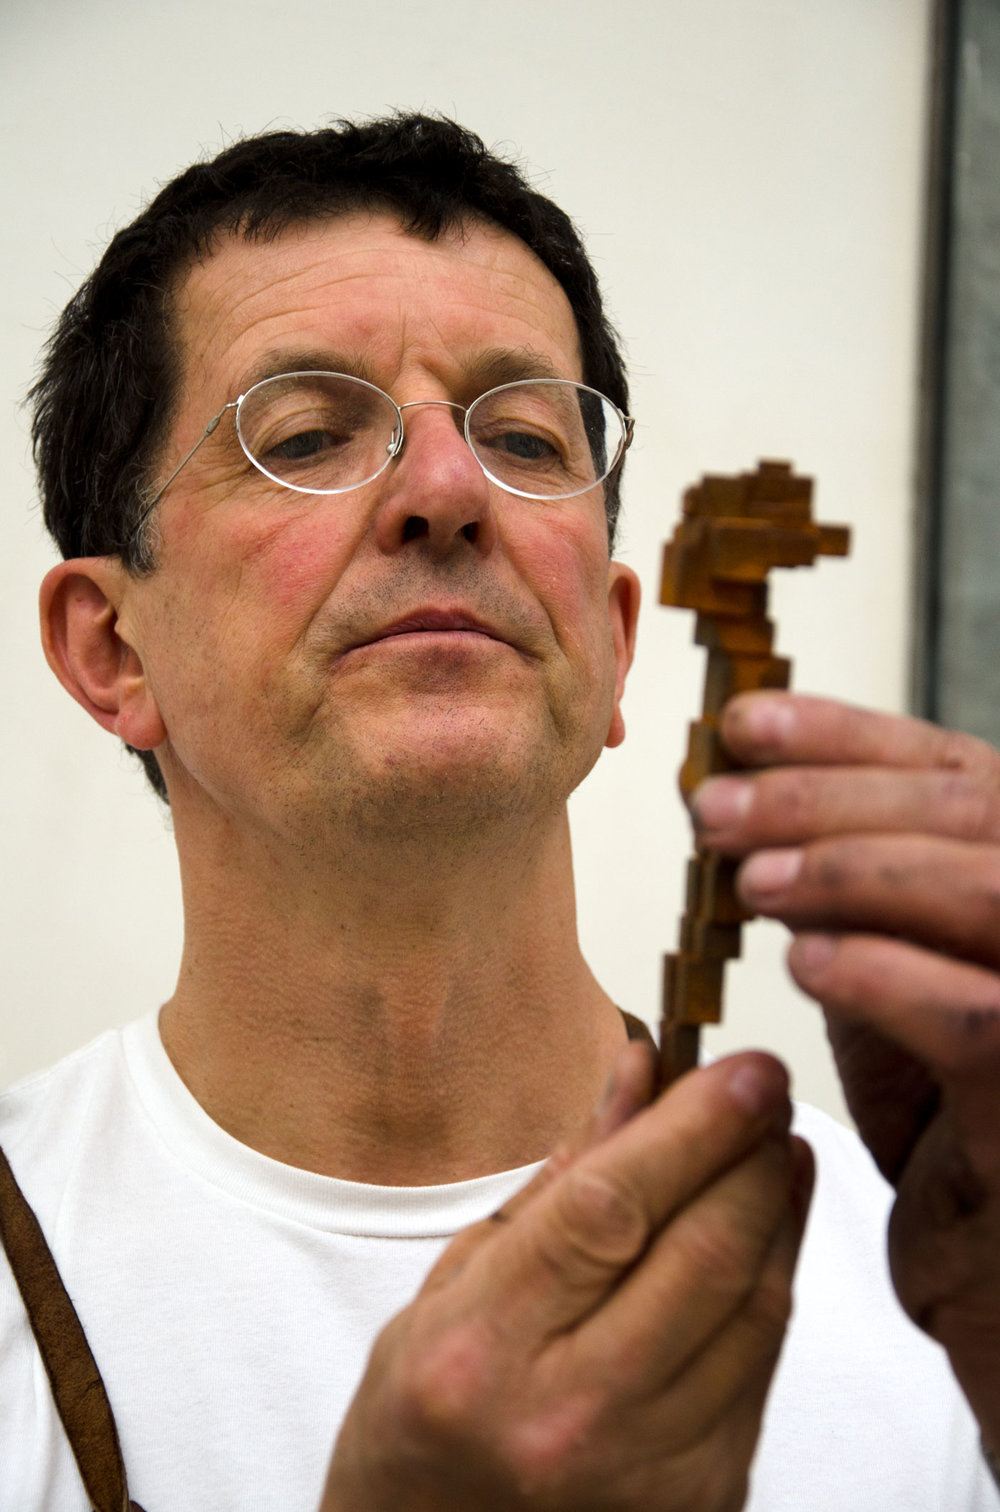 Antony Gormley, 2012